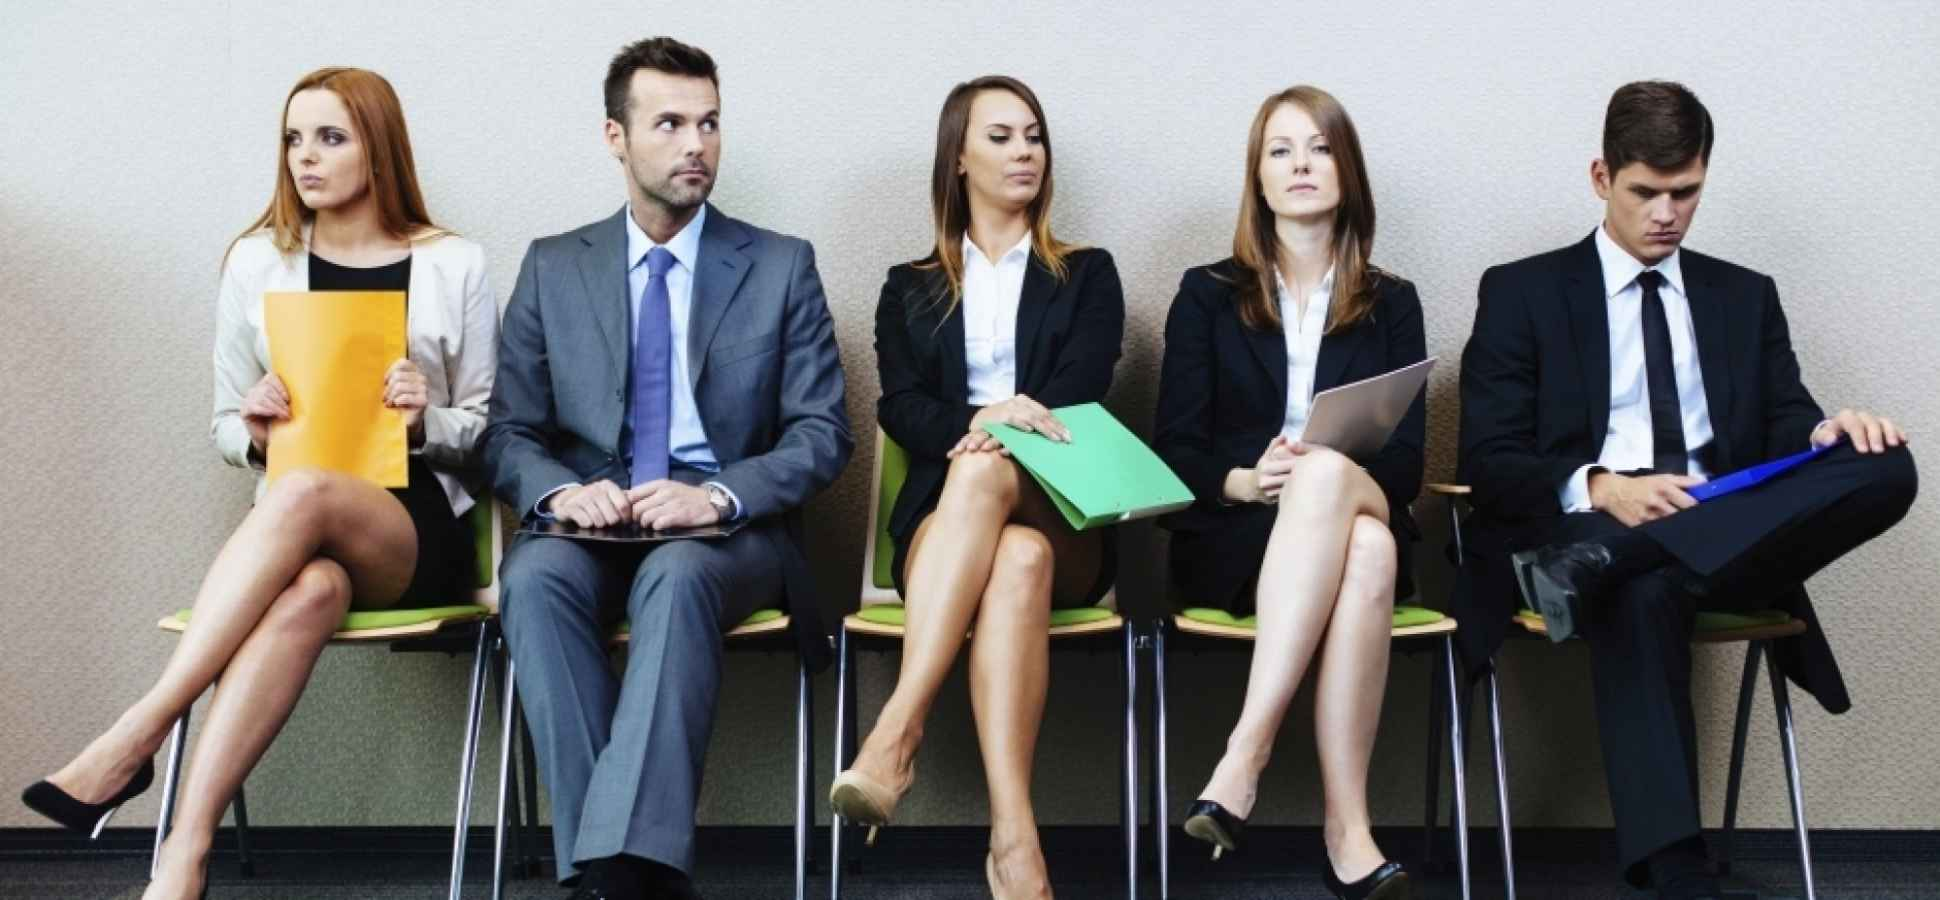 7 Job Interview Myths That Need to End Now